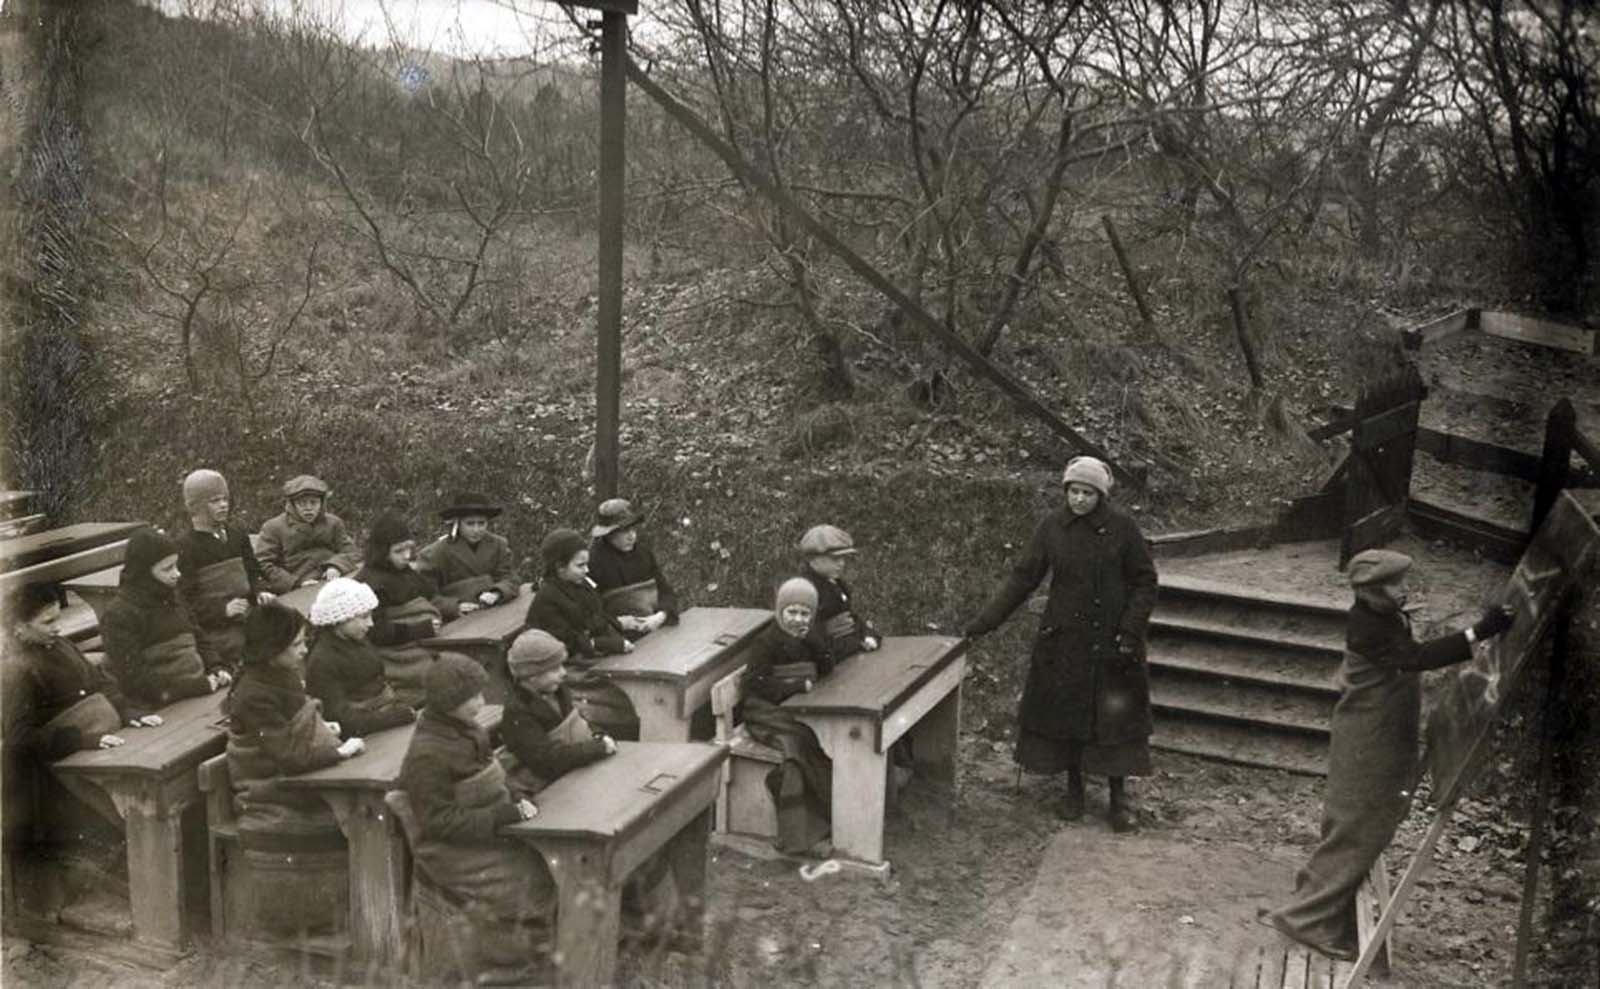 In the early 20th century, open air schools became fairly common in Northern Europe, originally designed to prevent and combat the widespread rise of tuberculosis.